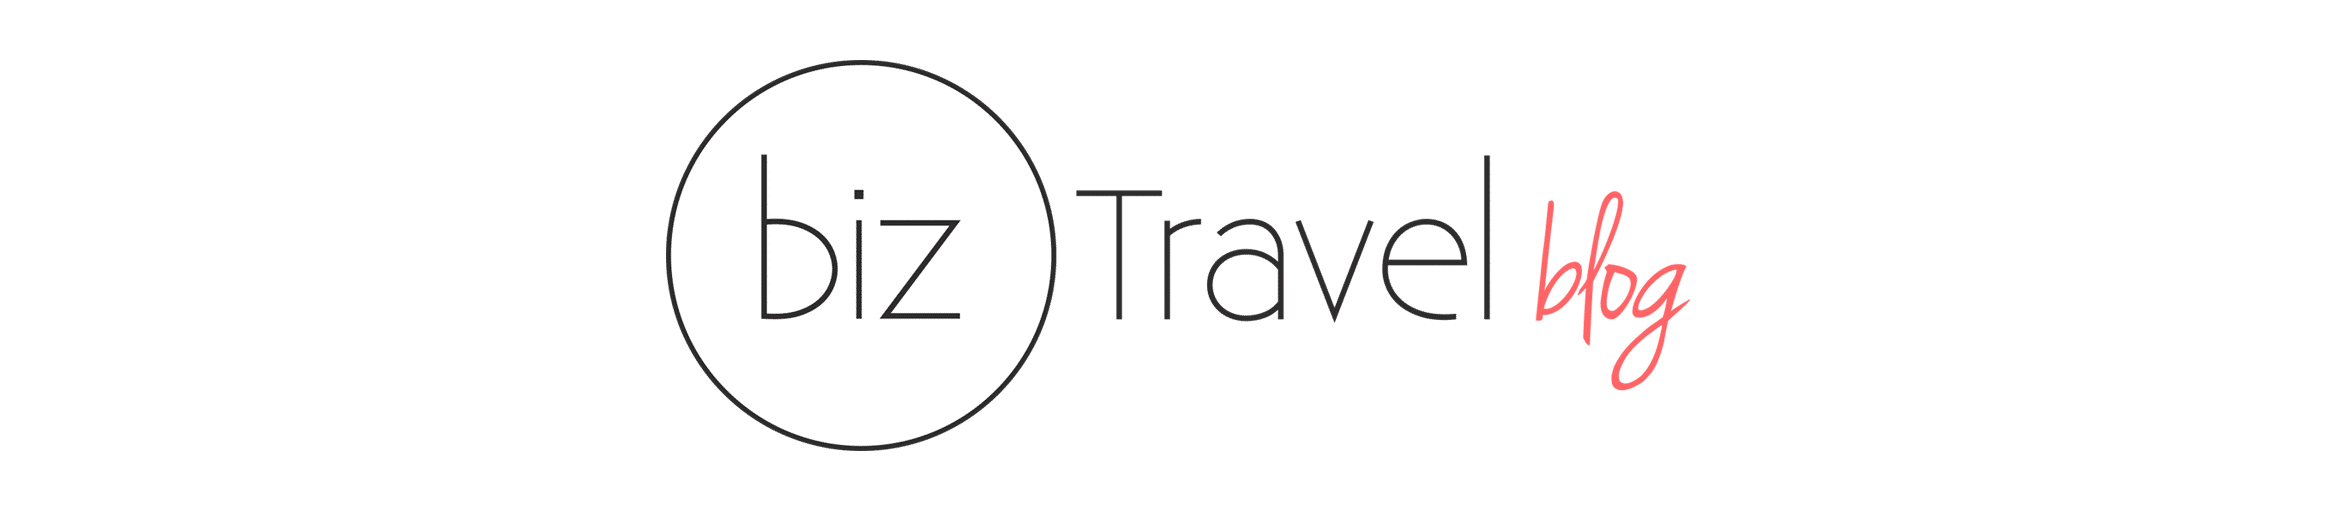 biz Travel blog